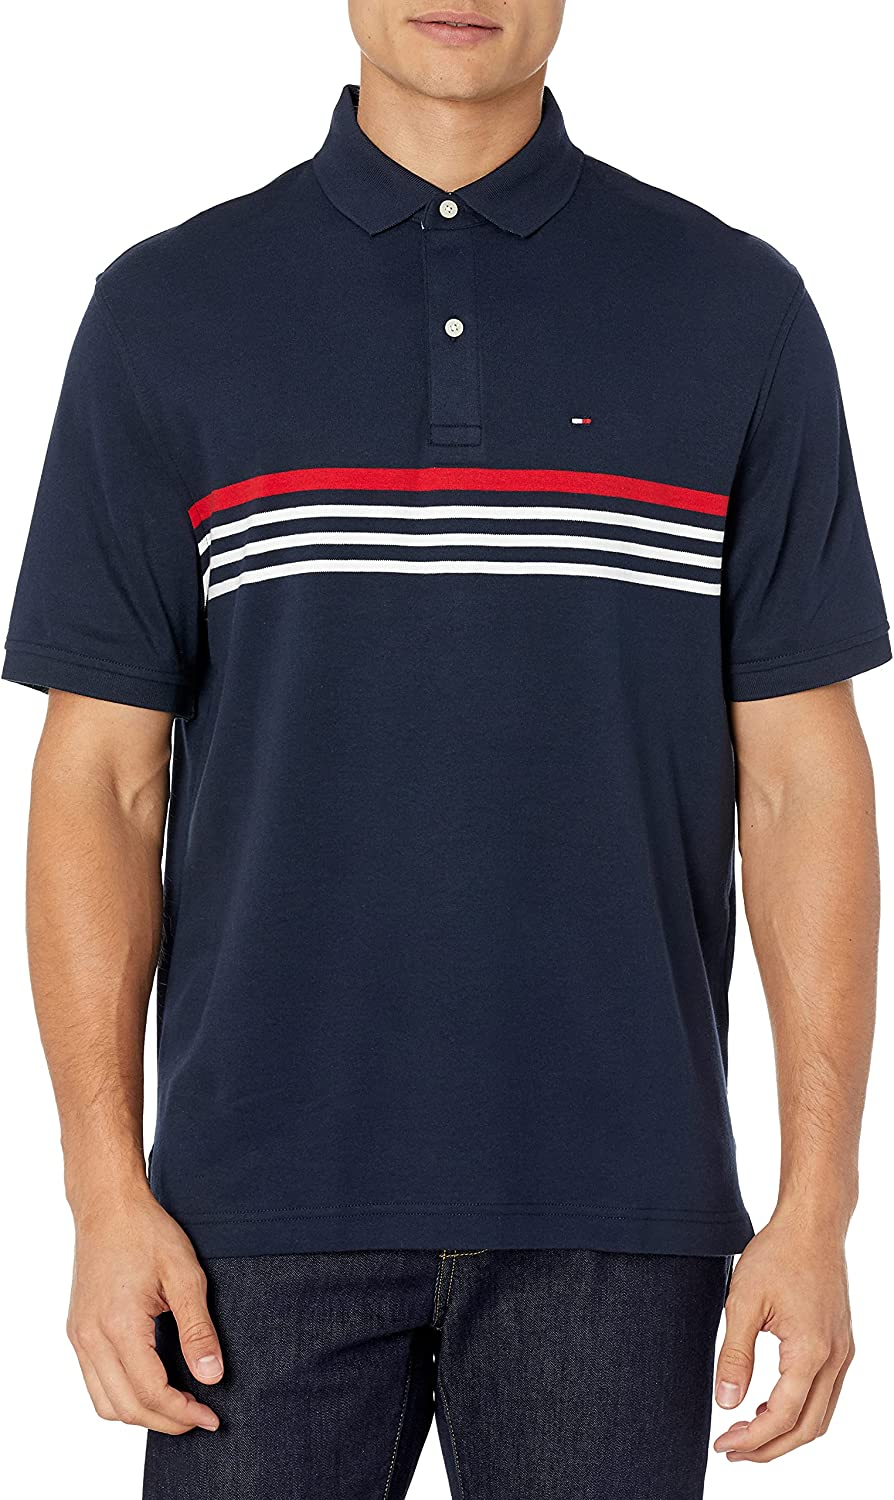 Tommy Hilfiger Men's Interlock Polo Fit Same day shipping in Ranking TOP6 Classic Shirt